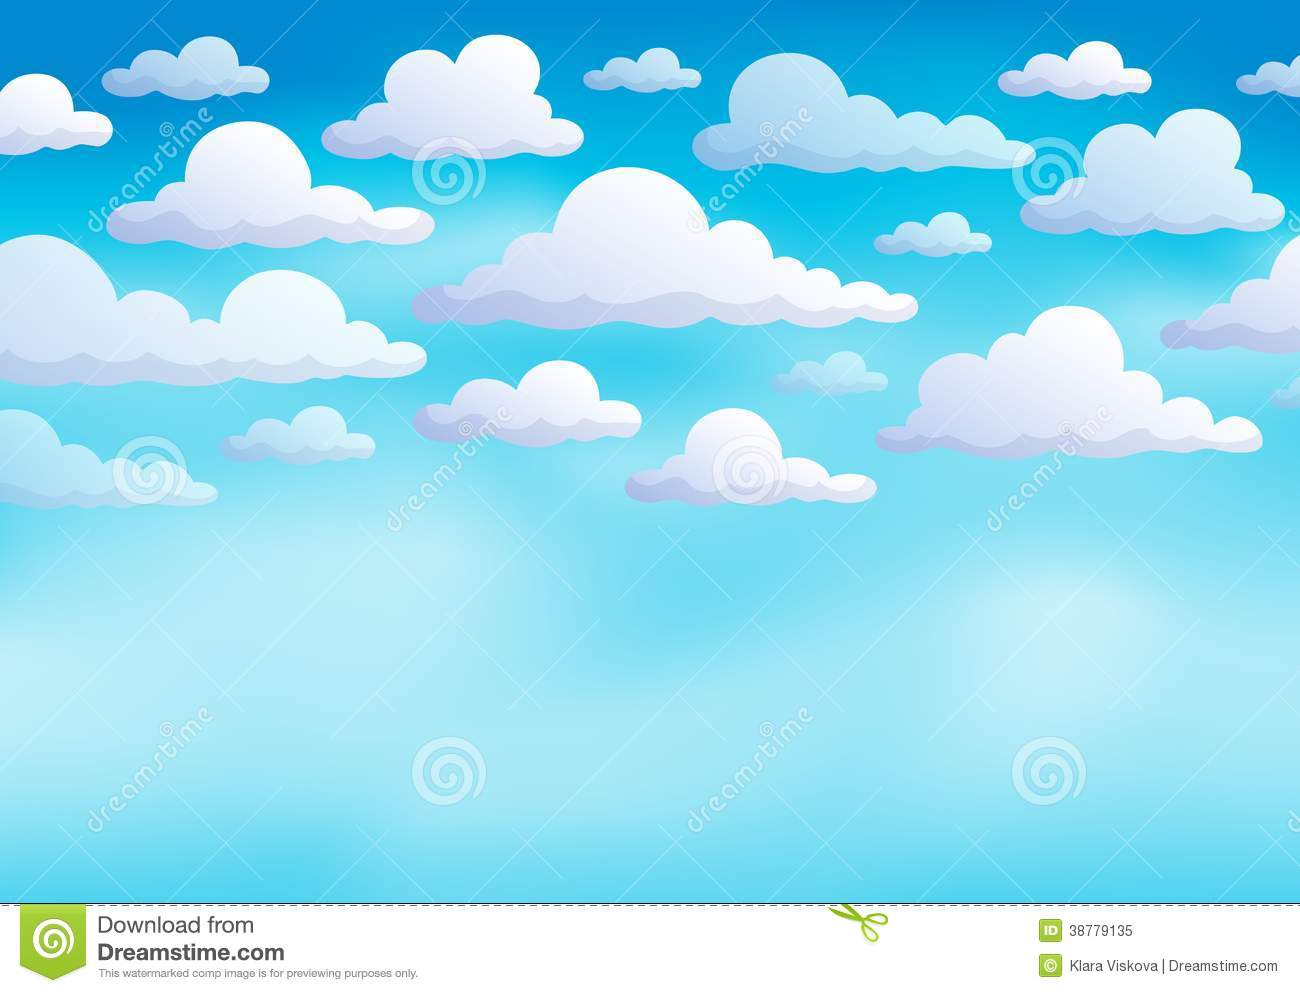 Cloudy sky background.